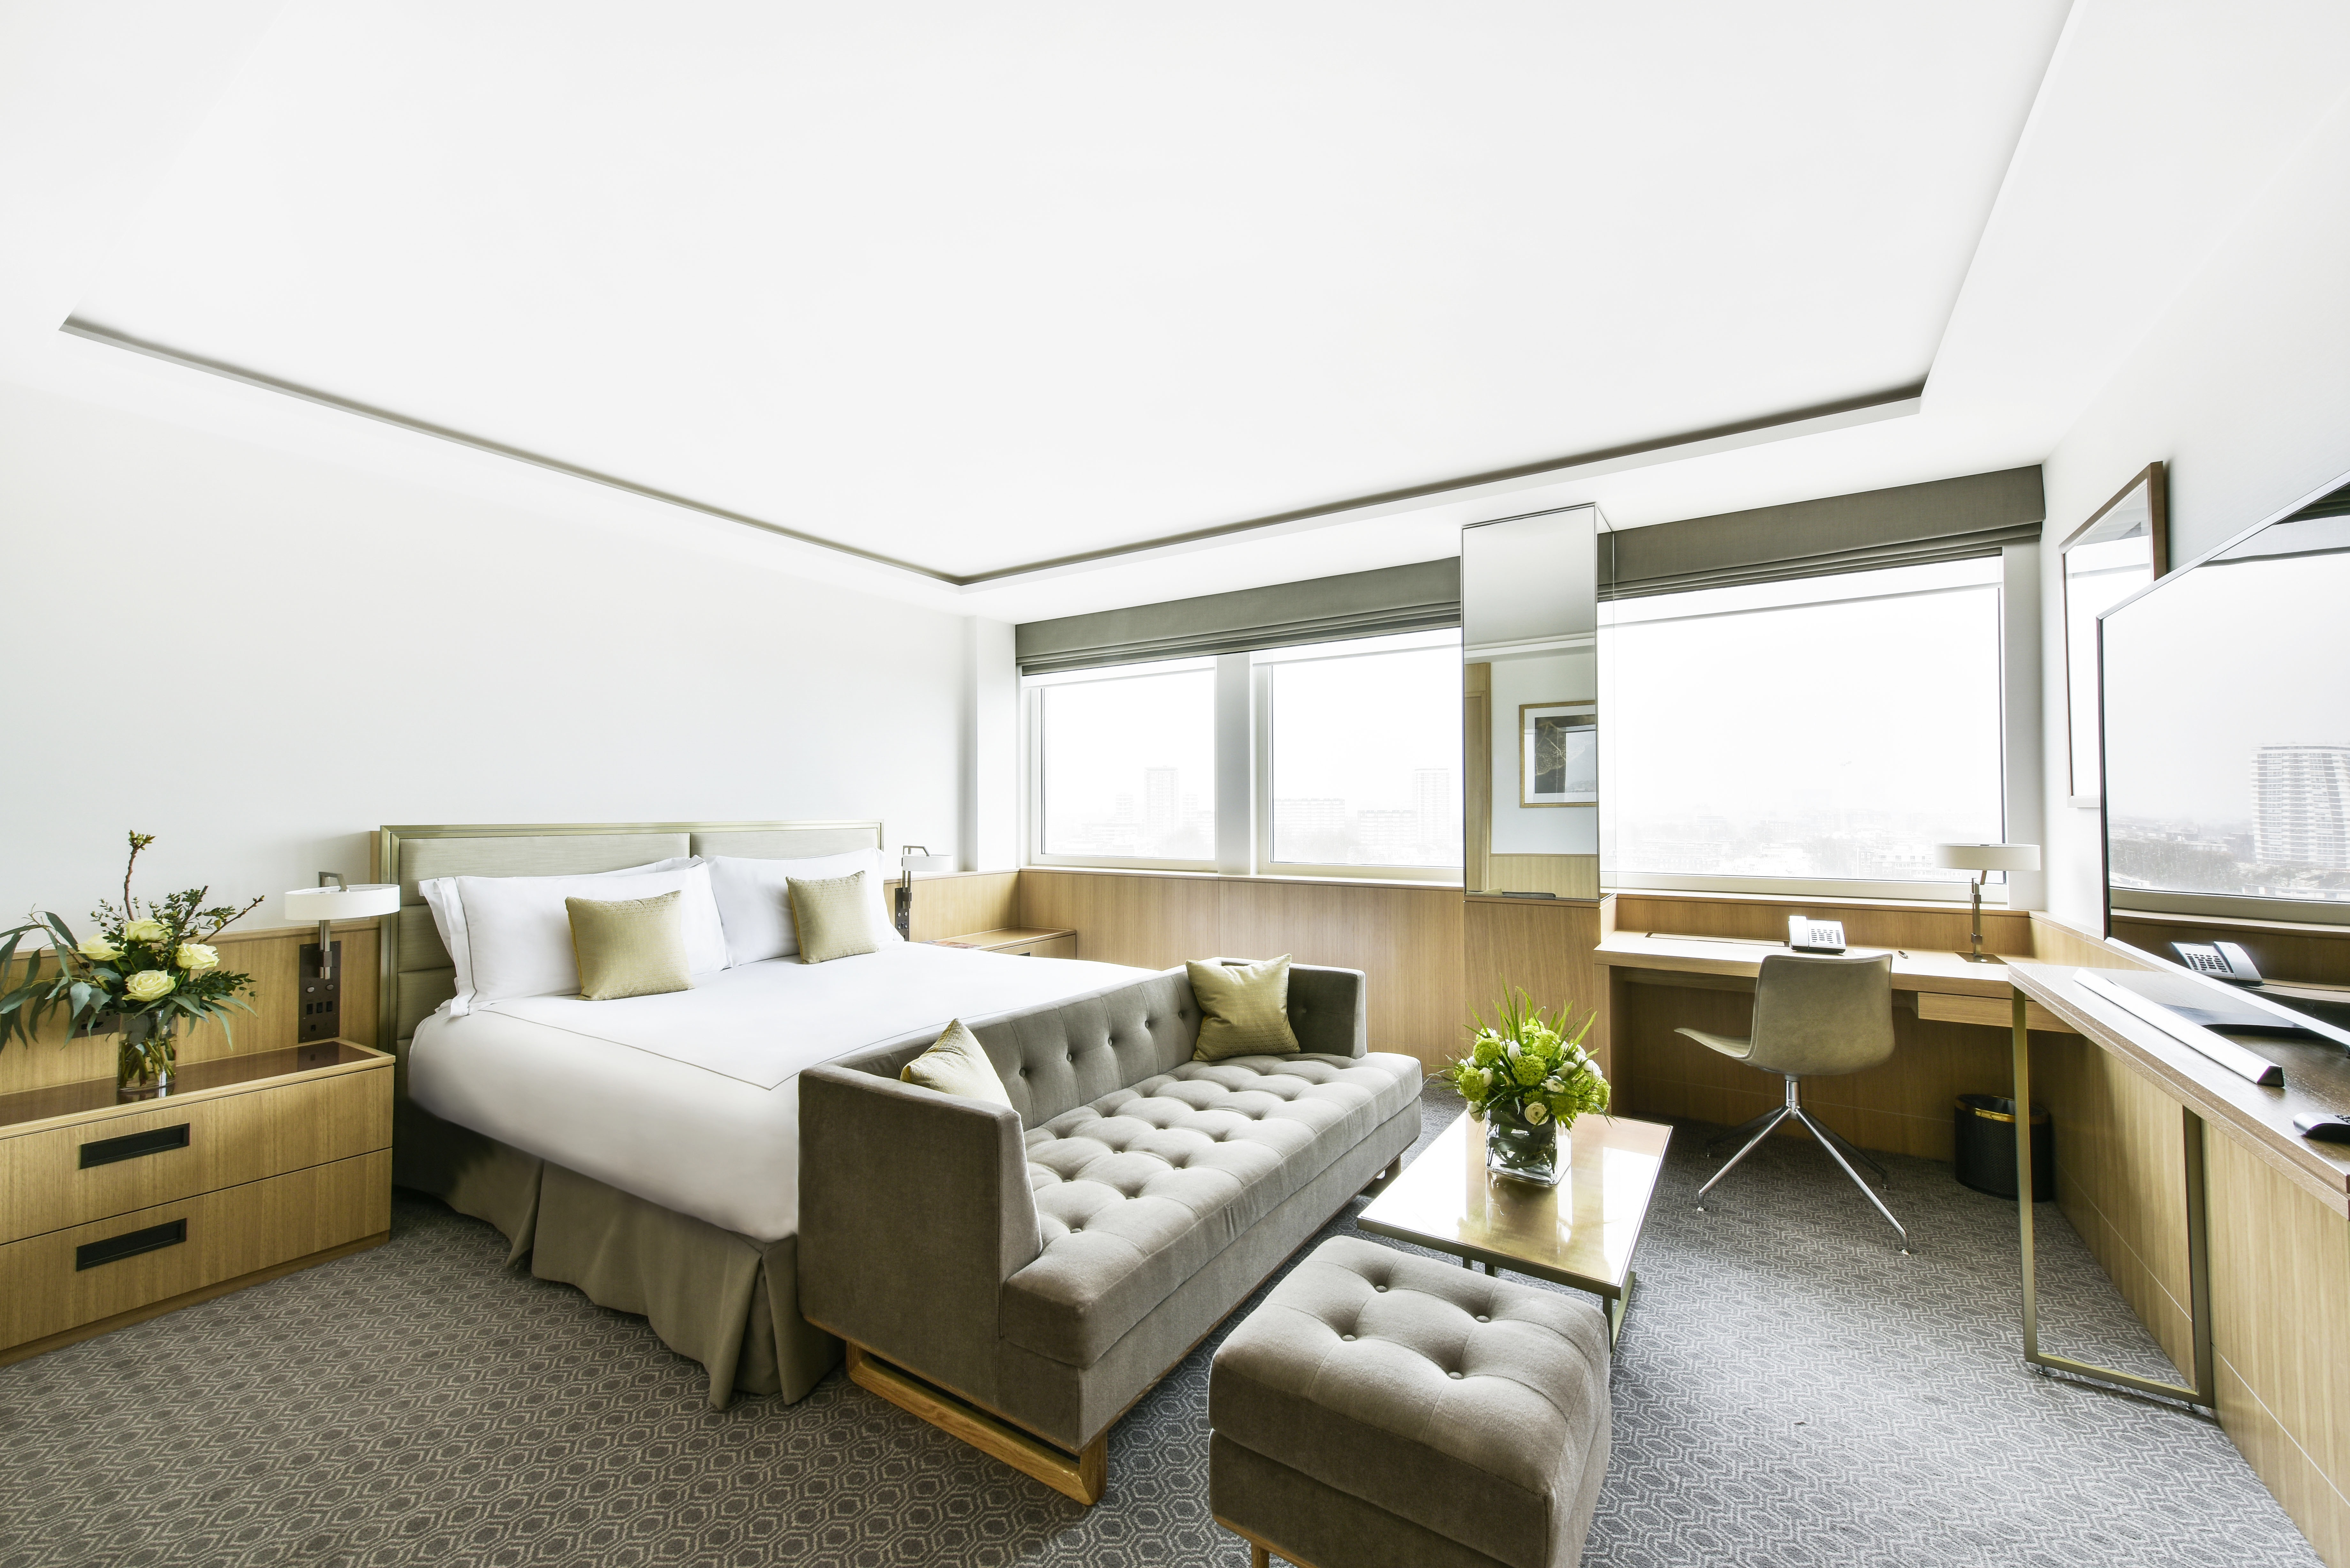 ROYAL LANCASTER LONDON: An £80 MILLION facelift gets this towering ...